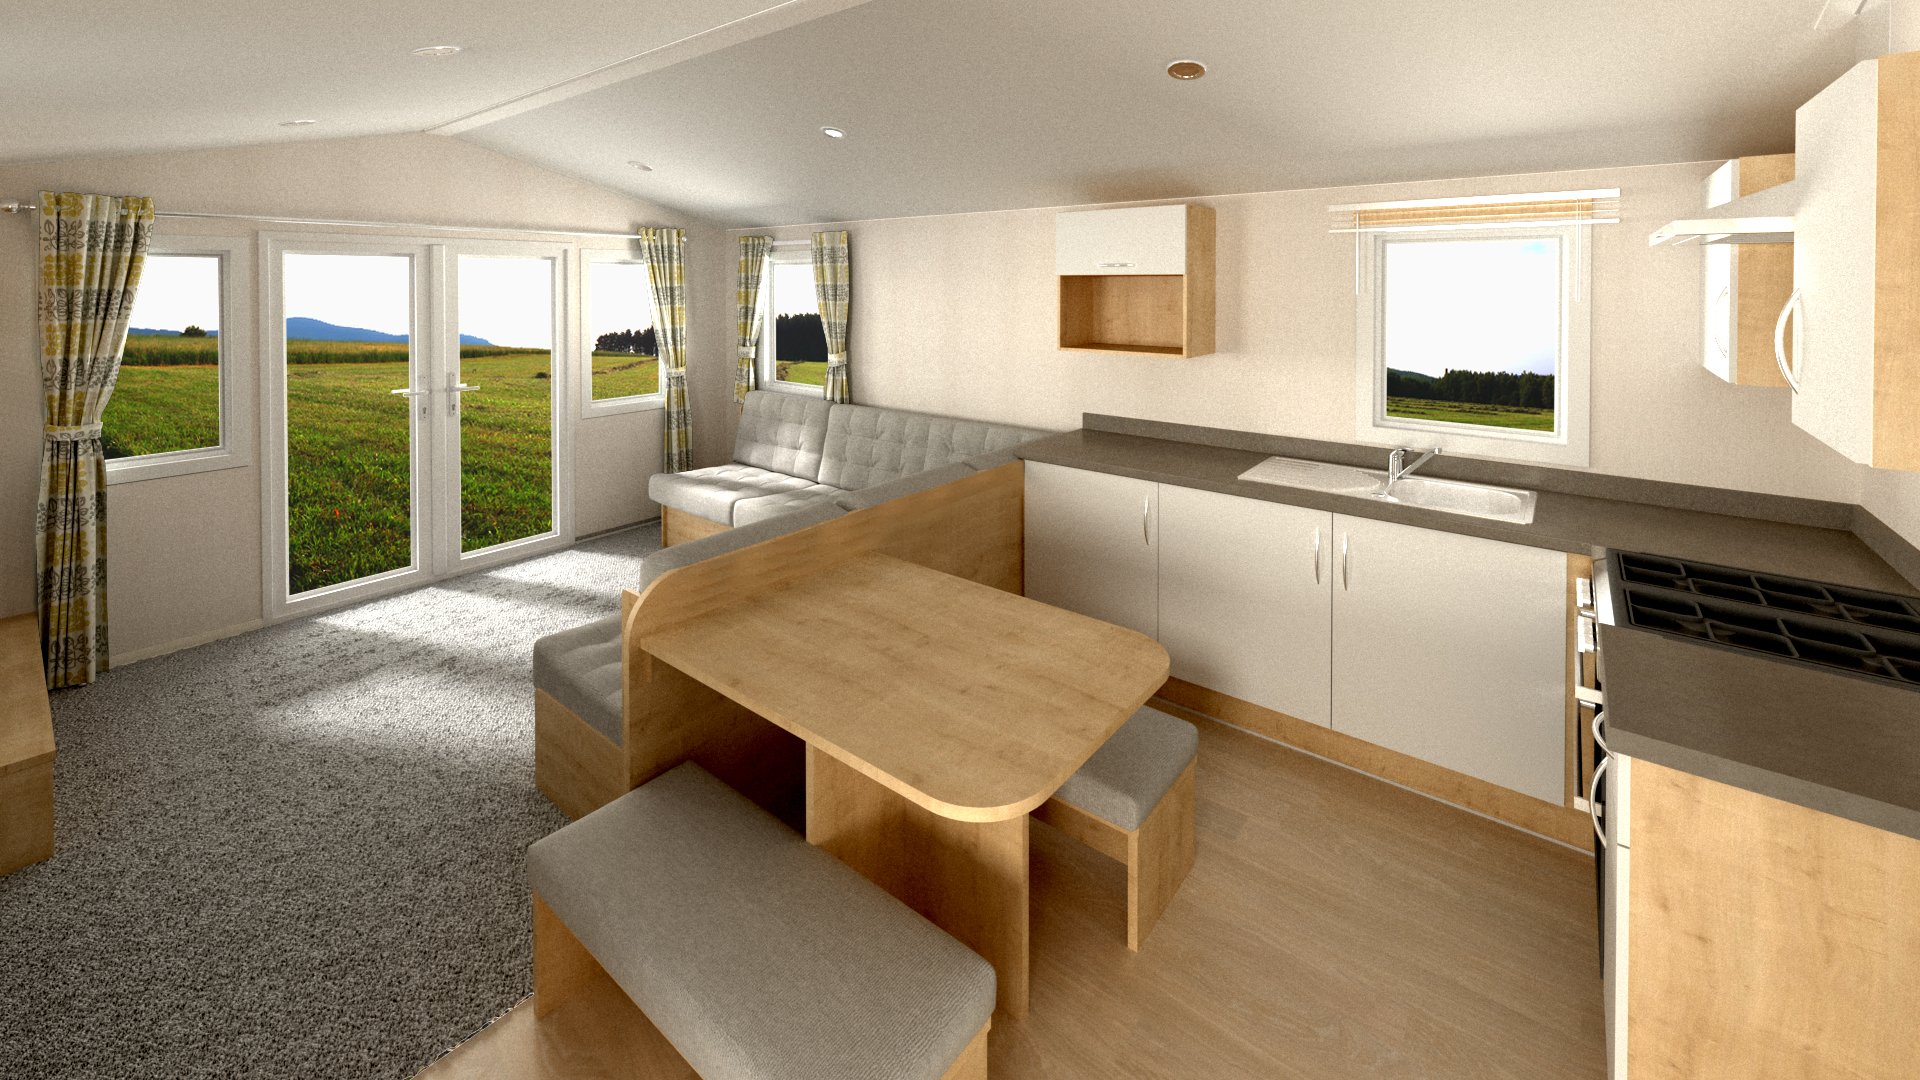 Willerby Grasmere: Static Caravans and Holiday Homes for Sale on